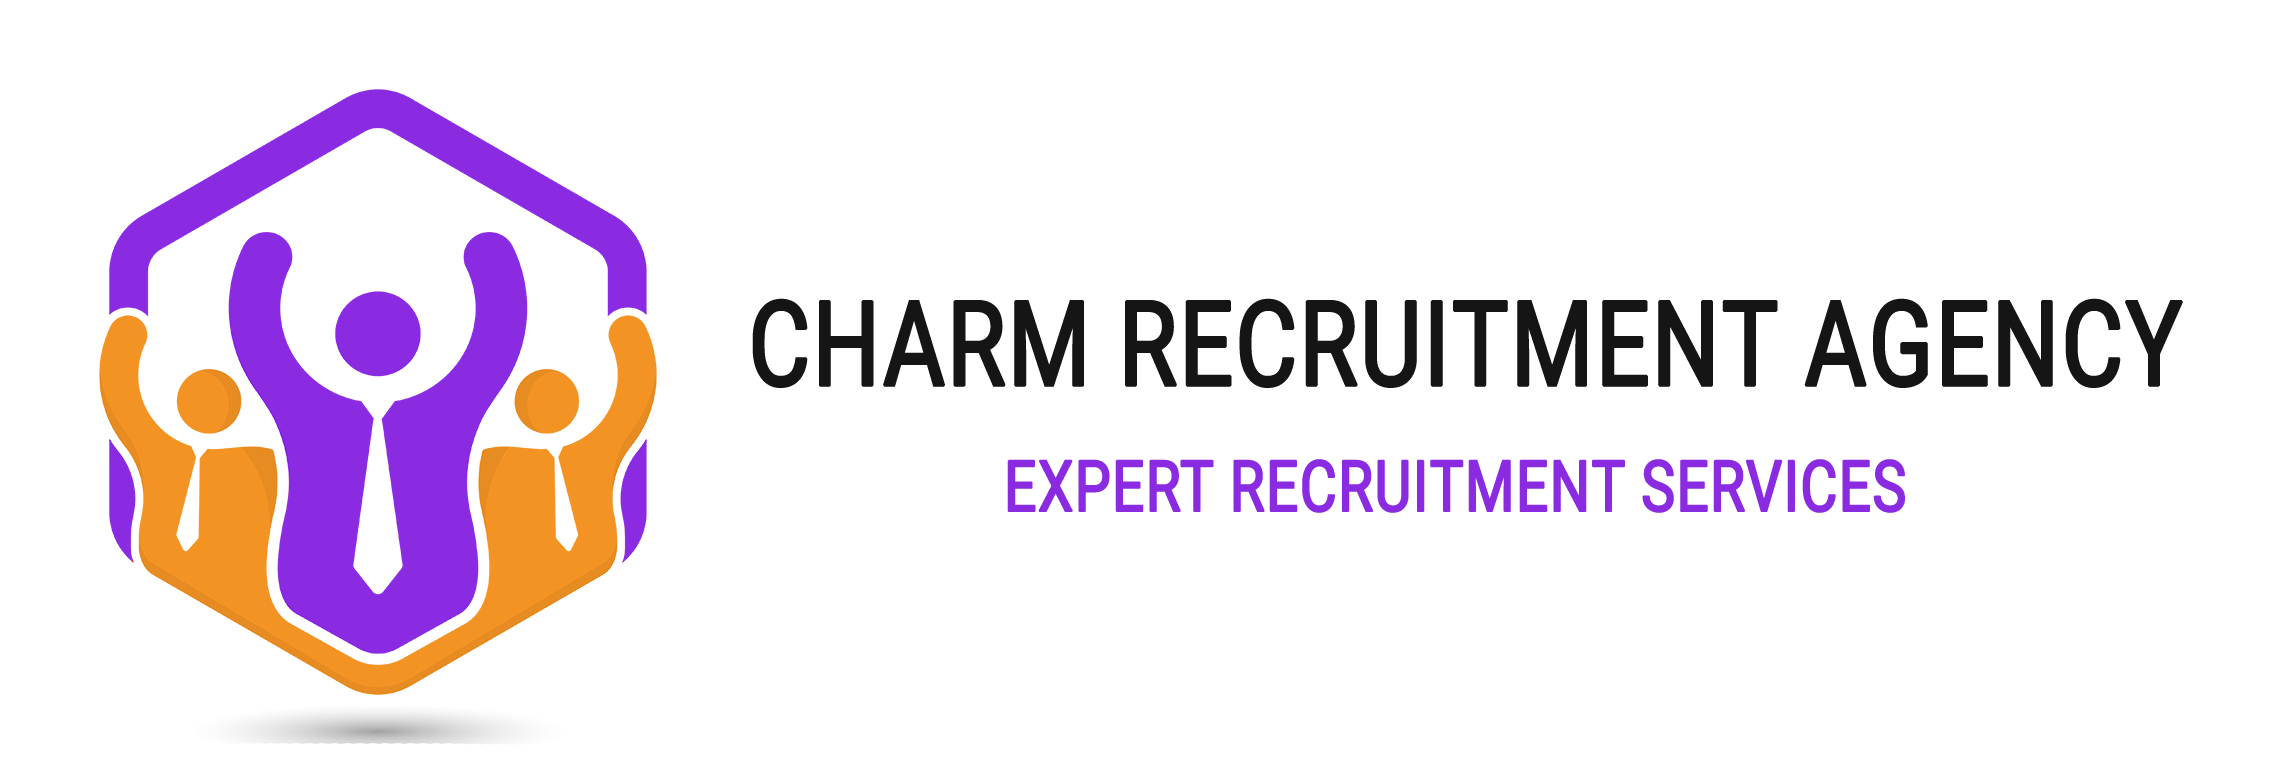 Charm Recruitment Agency